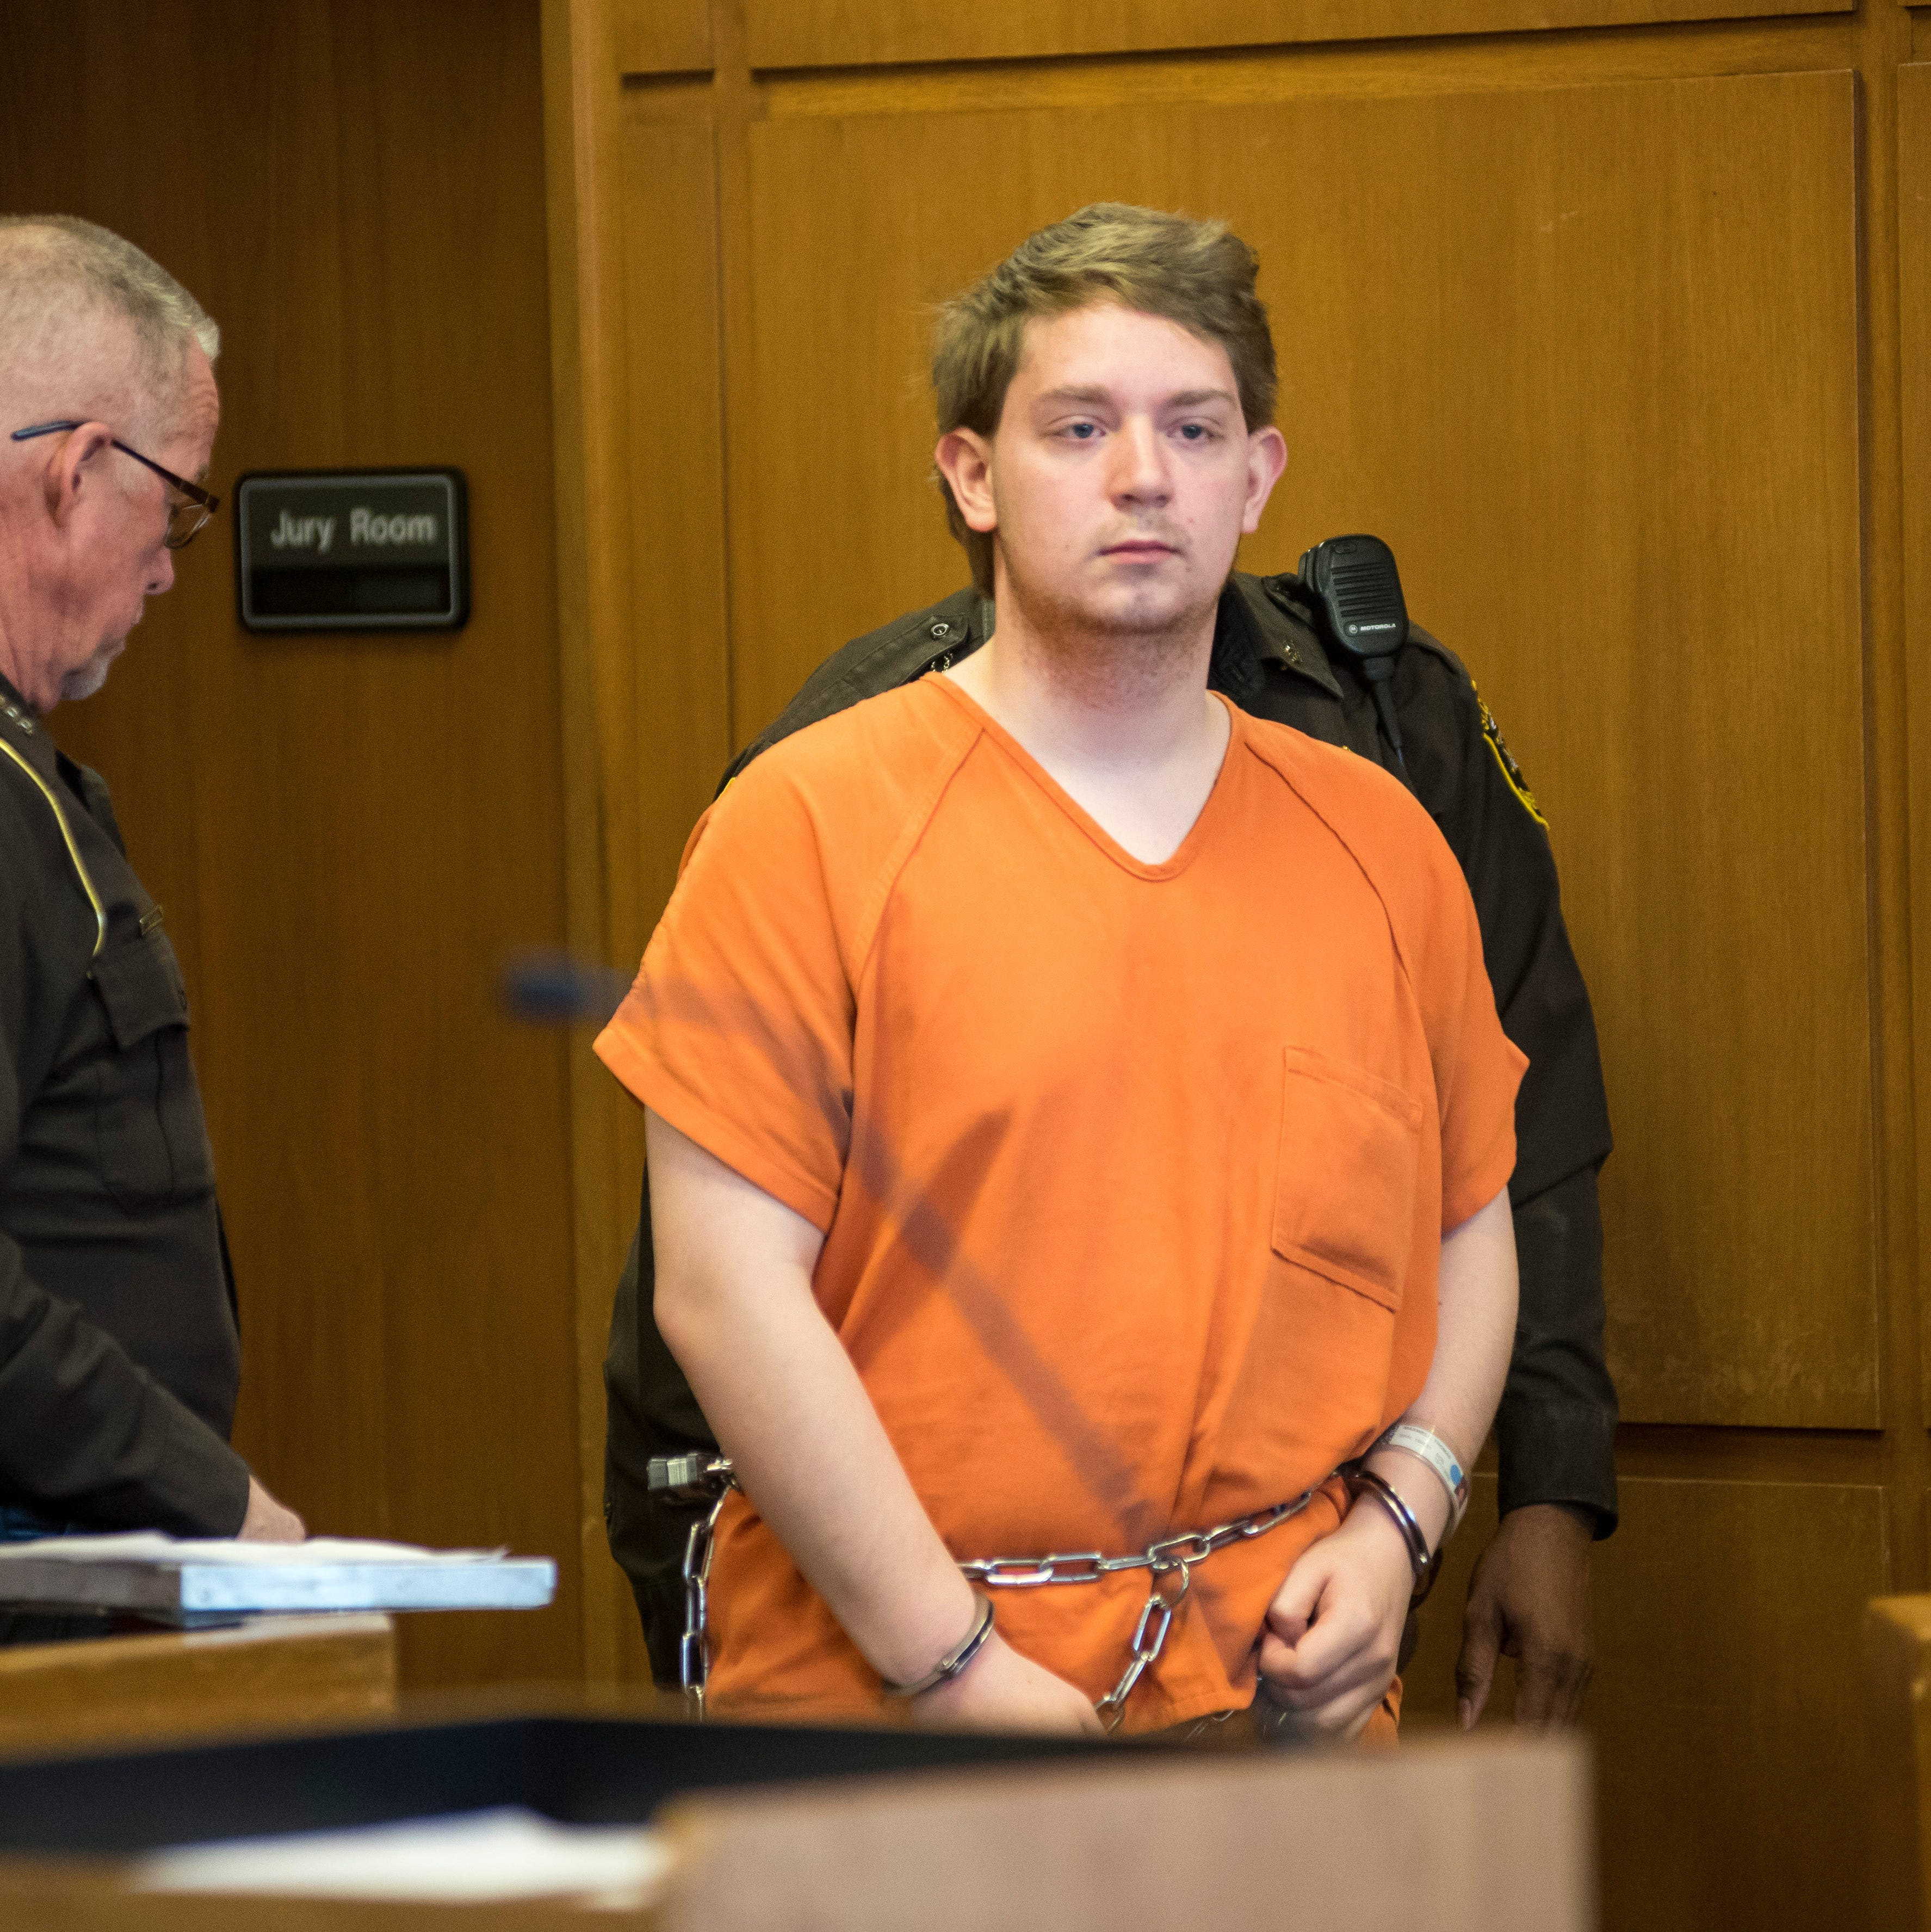 Student in threats case could get plea deal